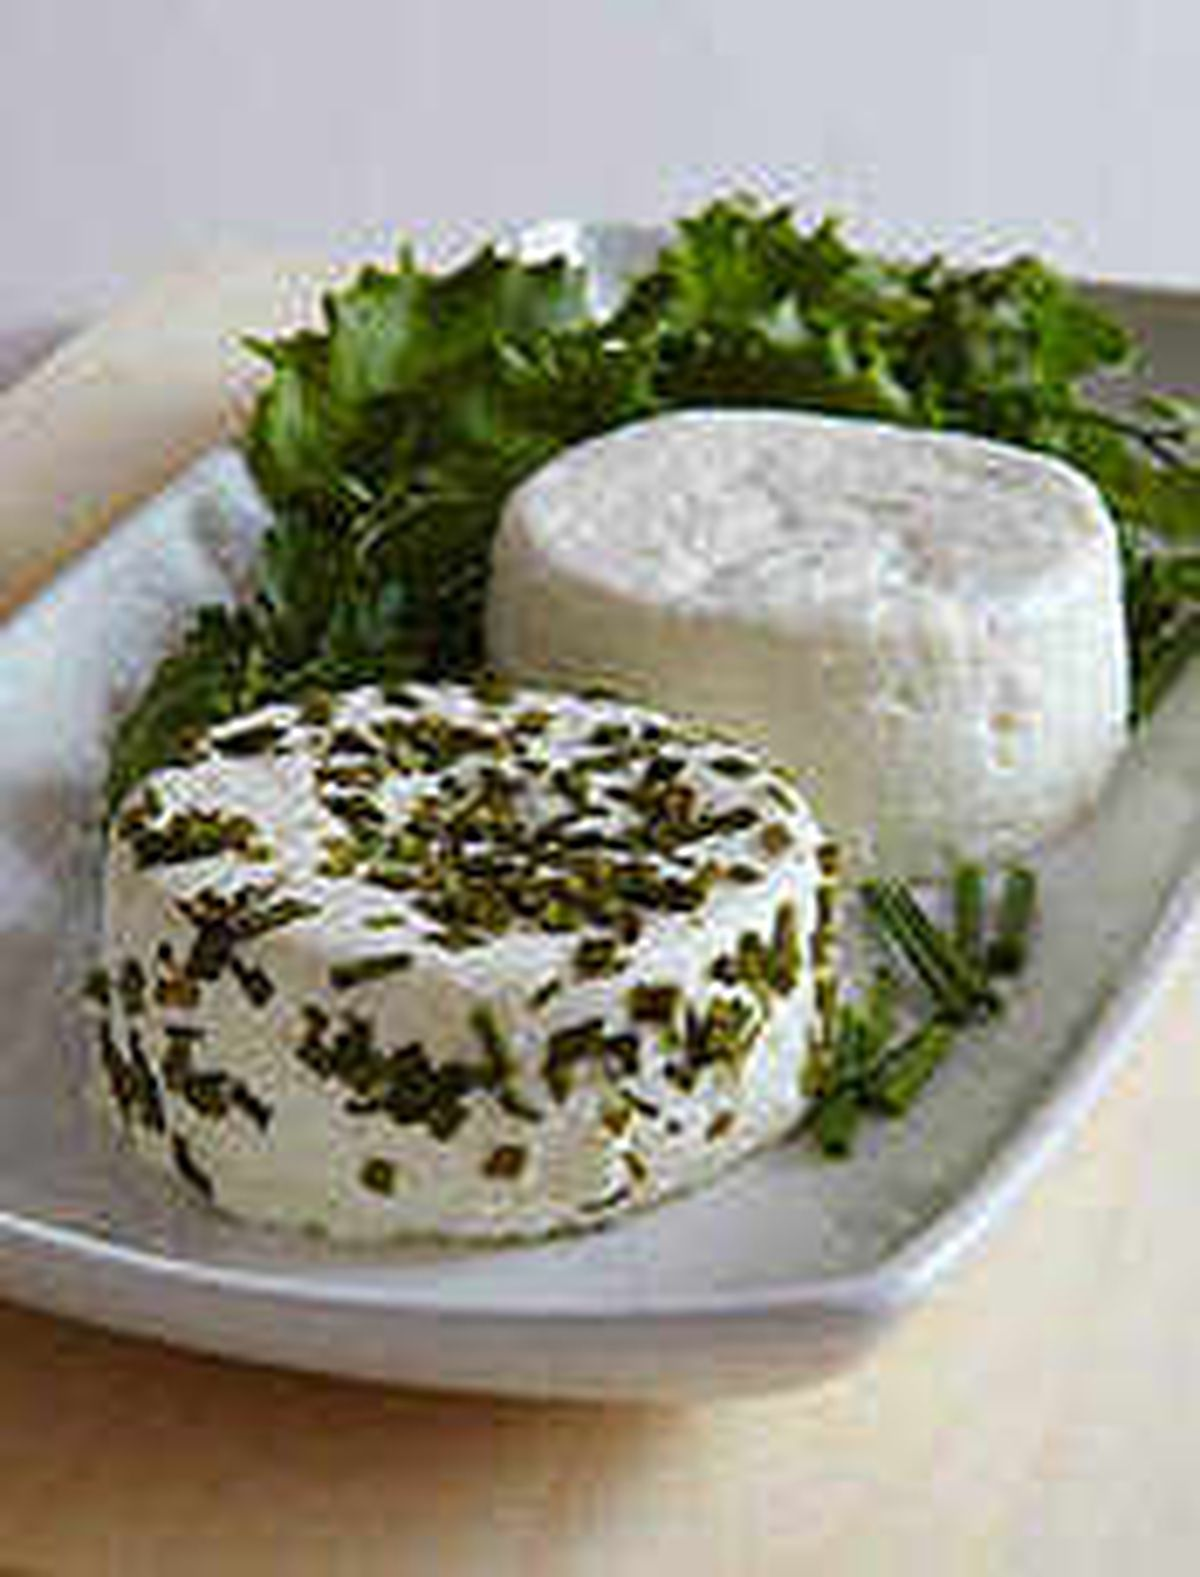 Great goats cheese, and no kidding!